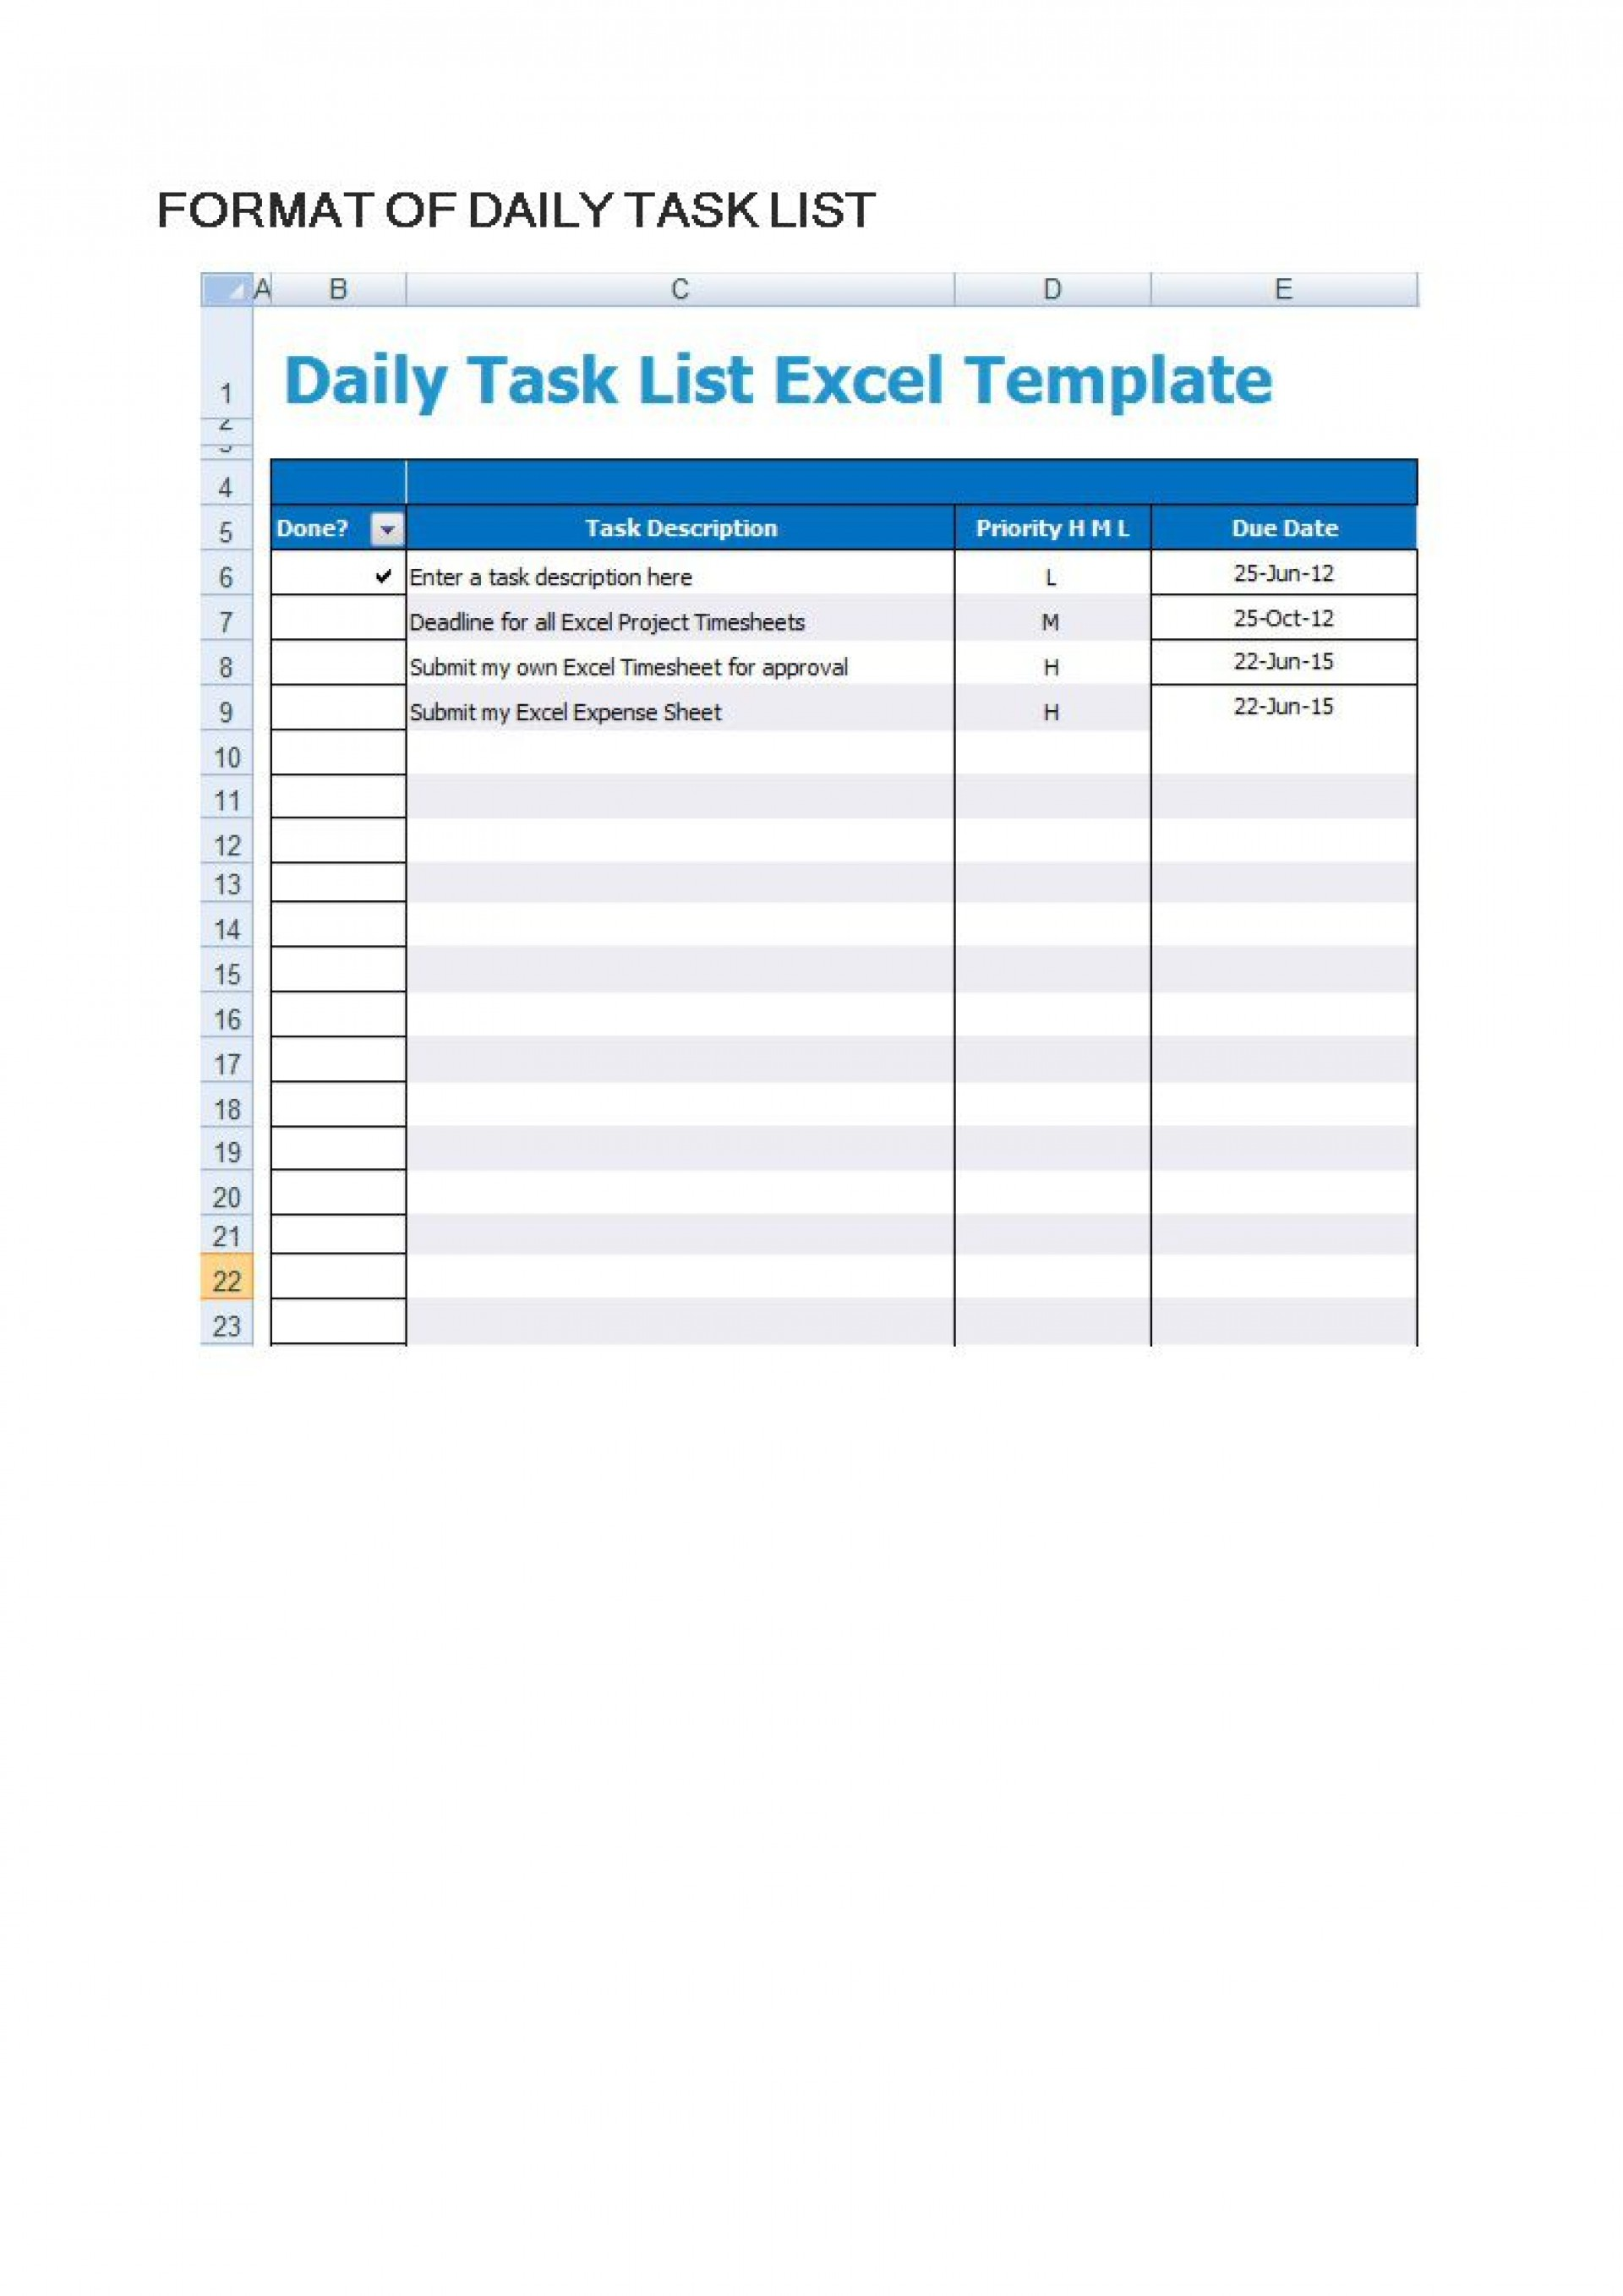 003 Surprising Daily Task List Template High Def  Excel Download To Do Free1920